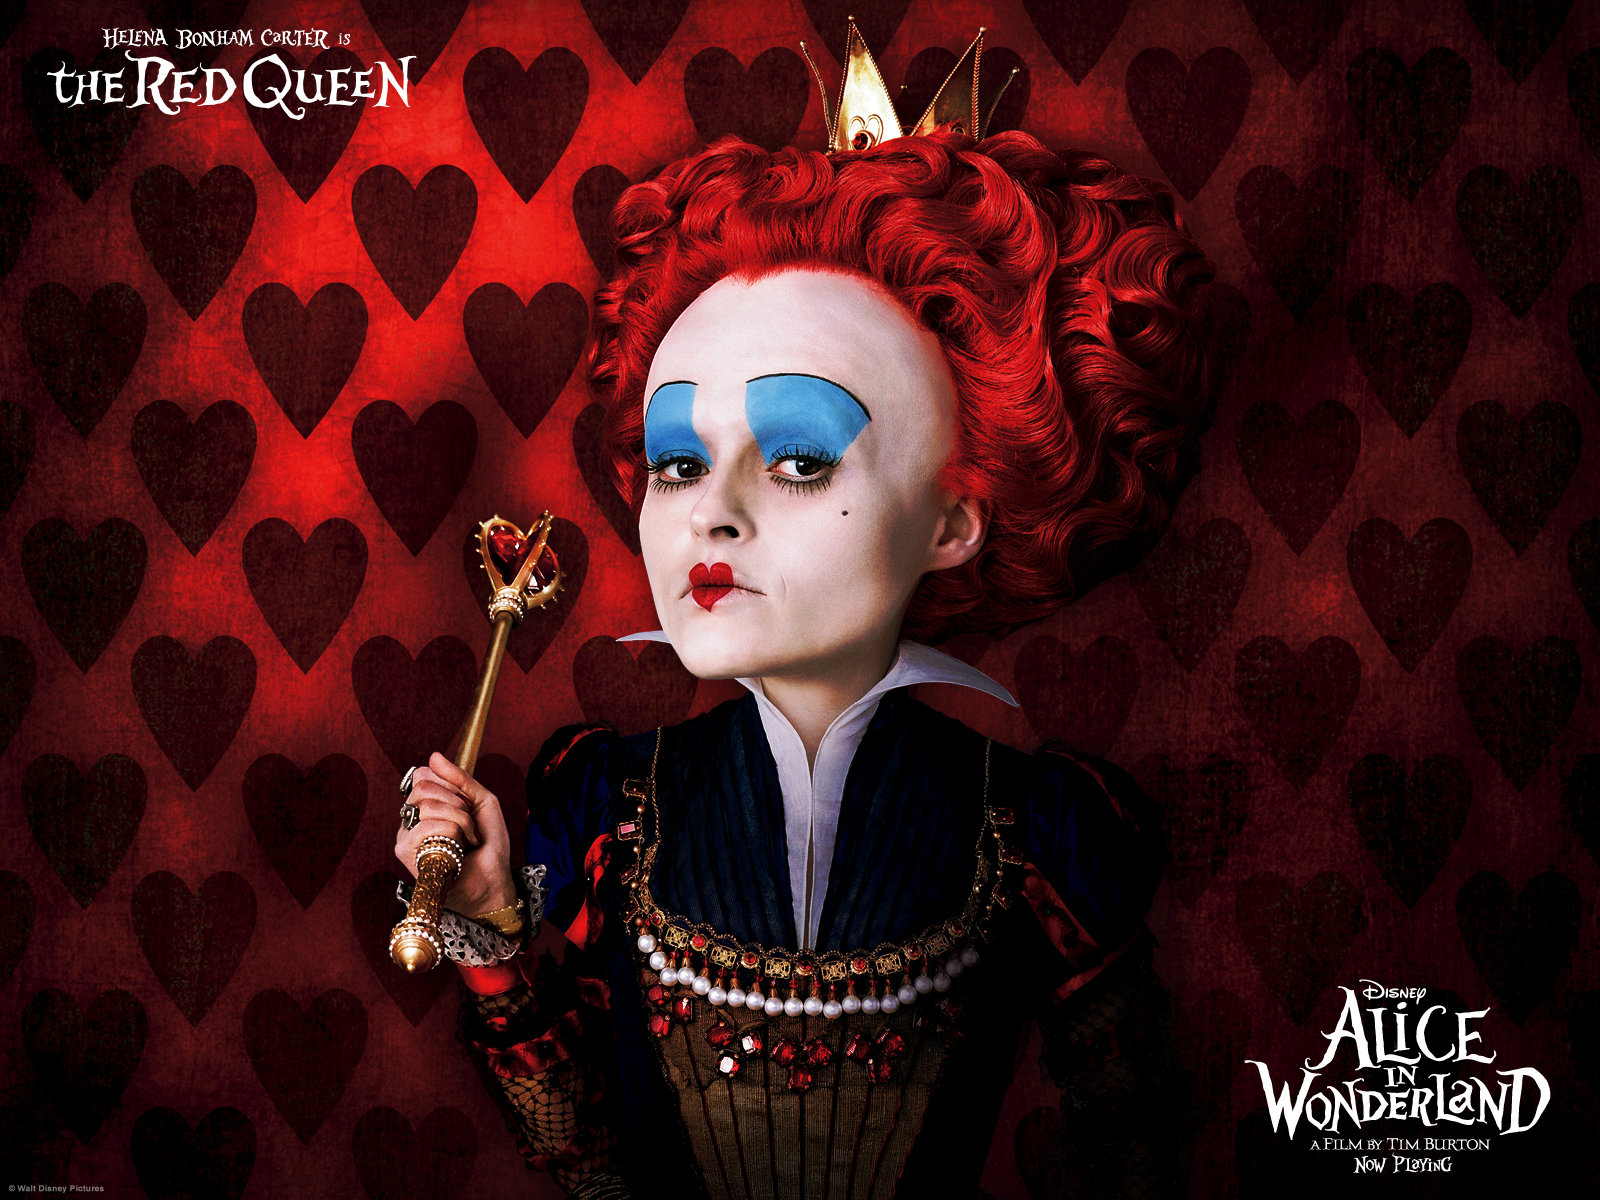 red queen in alice in wonderland actress